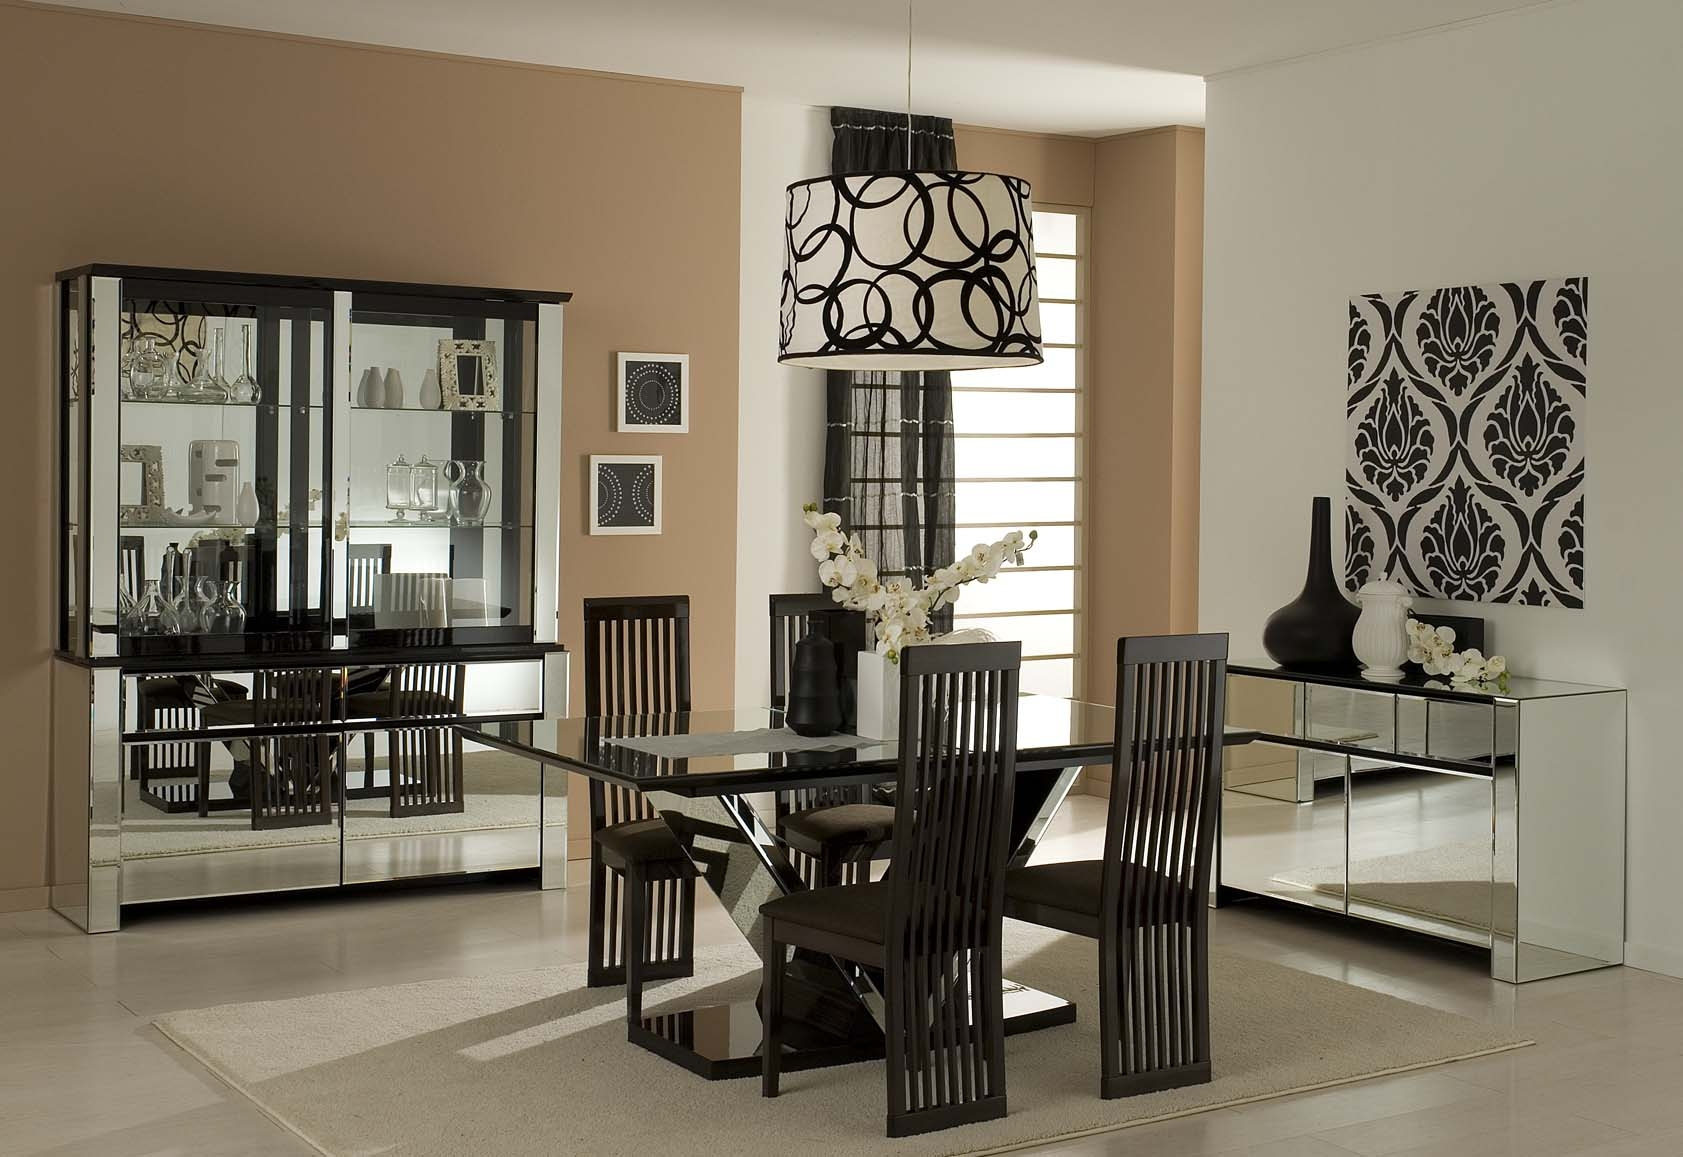 Decorating dining room buffets and sideboards large and beautiful